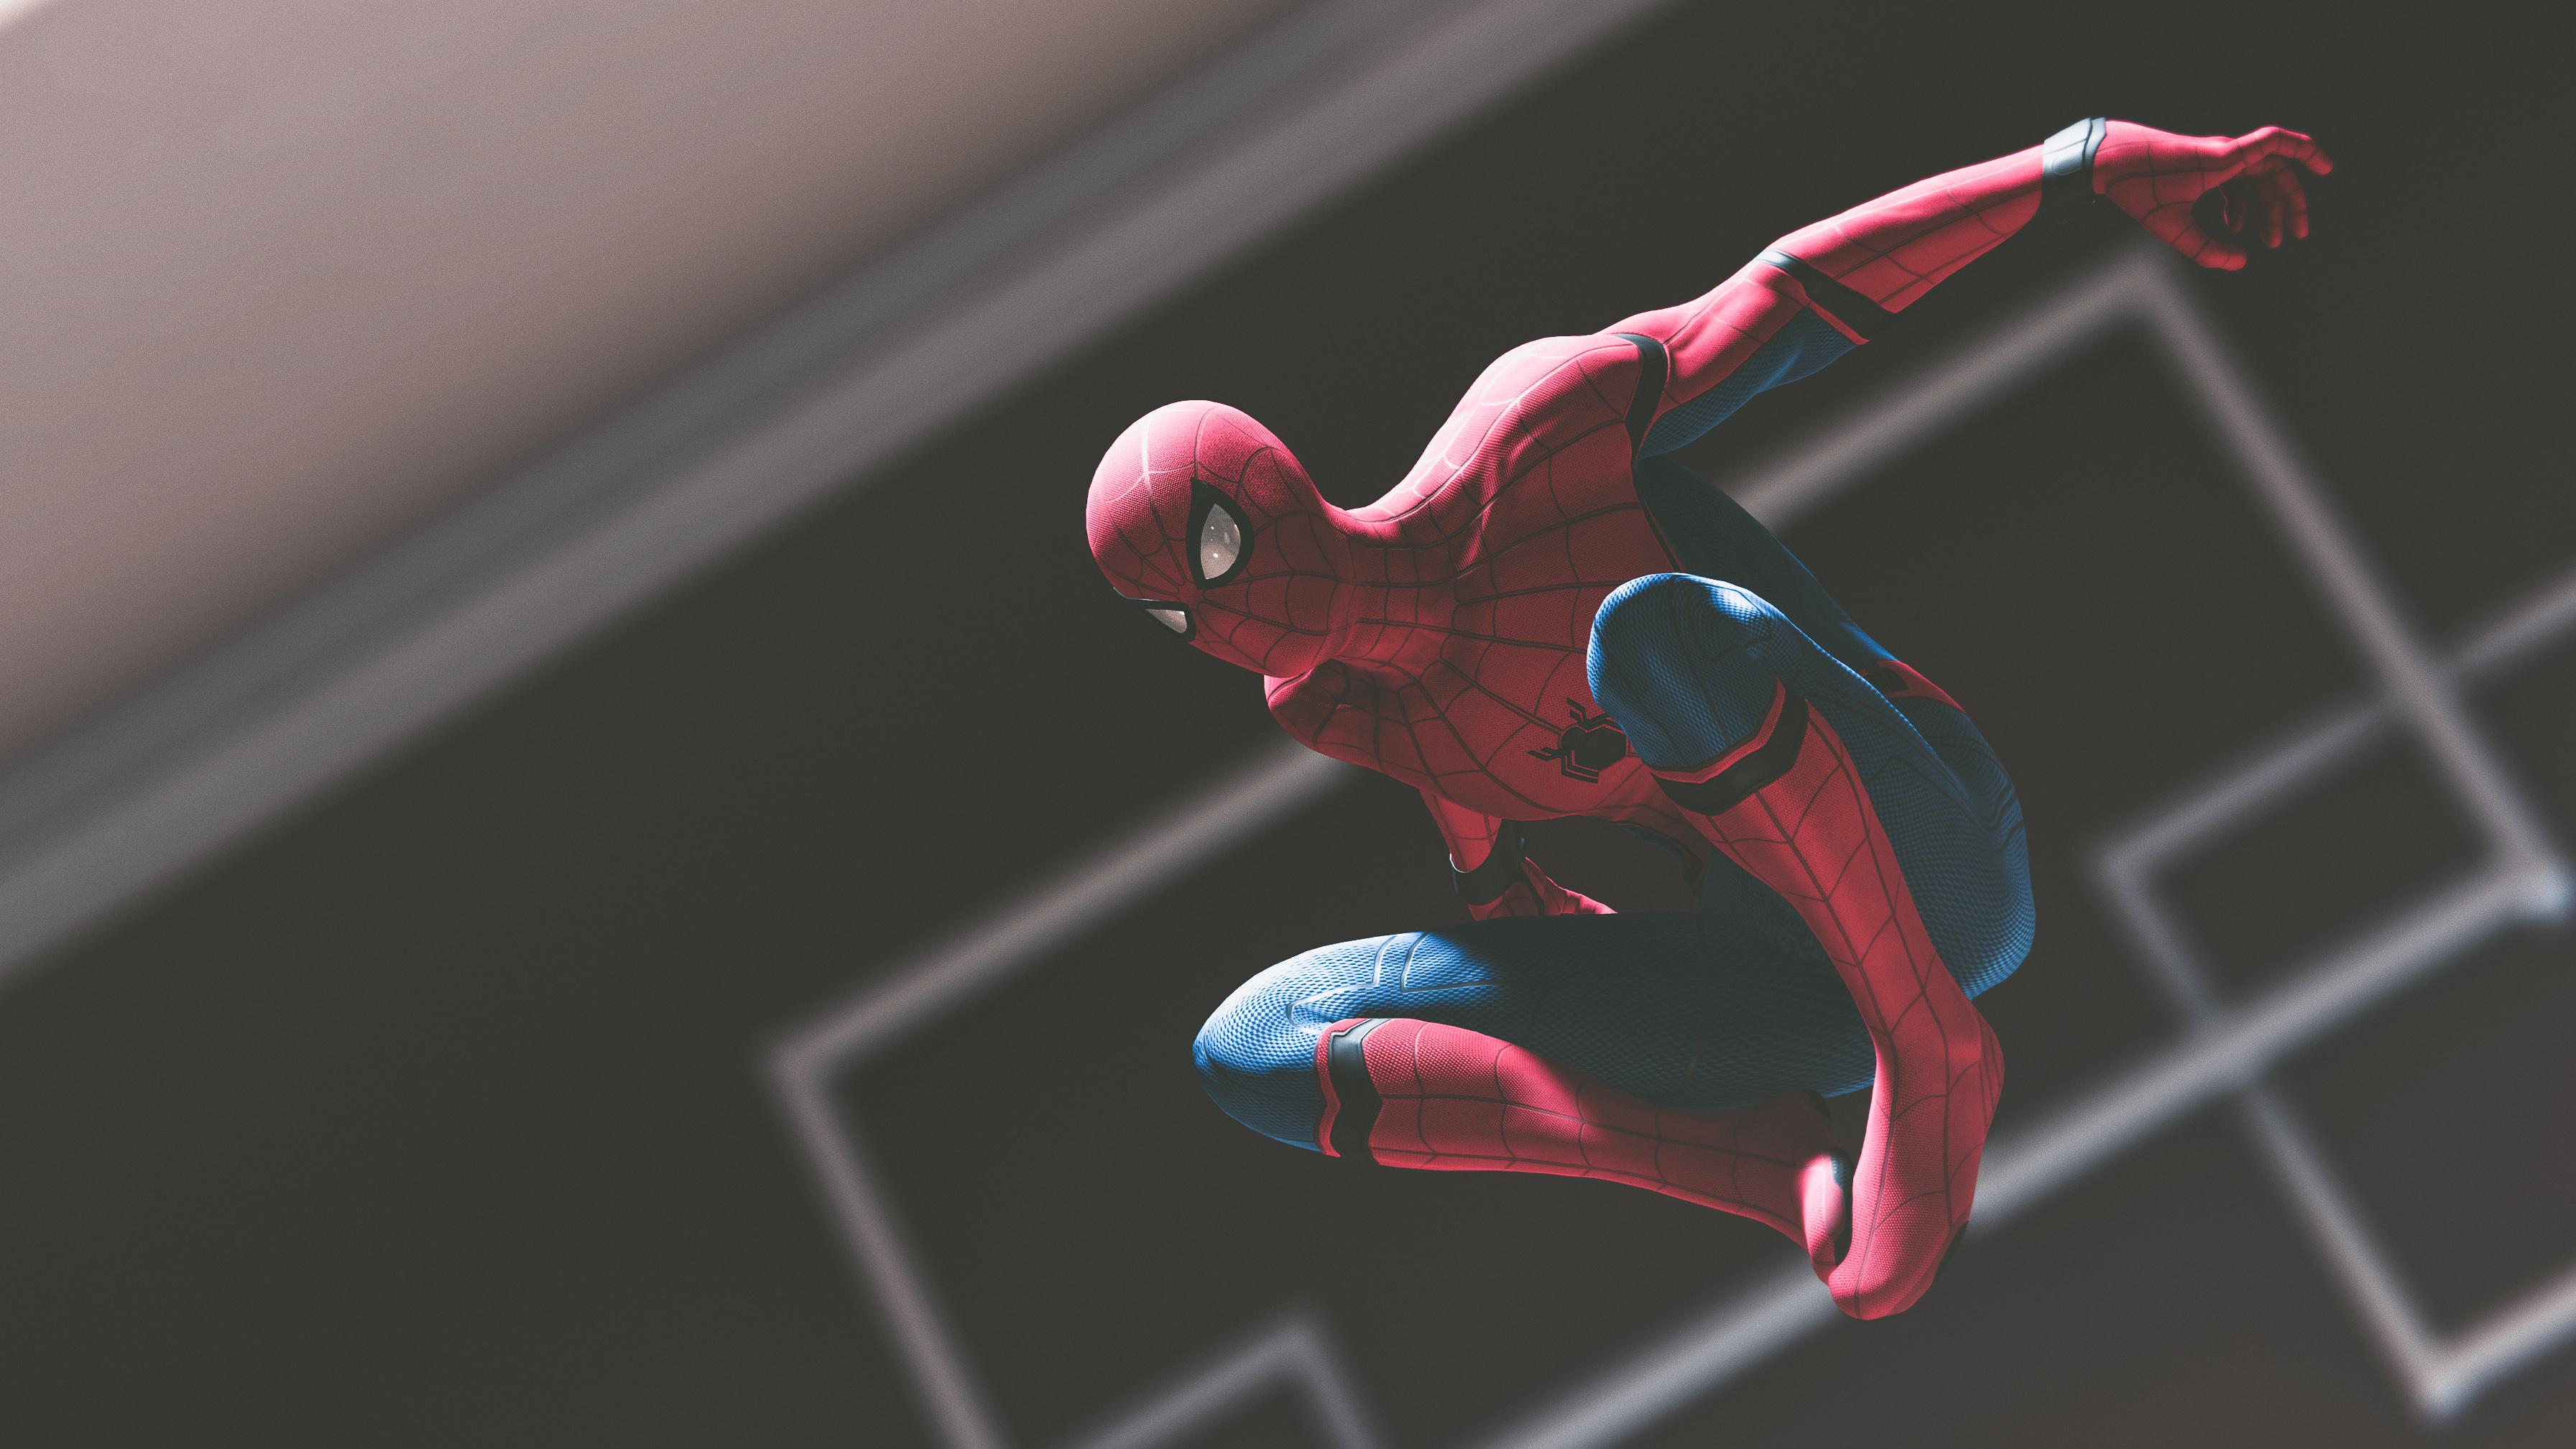 Wallpaper Spiderman Posted By John Cunningham